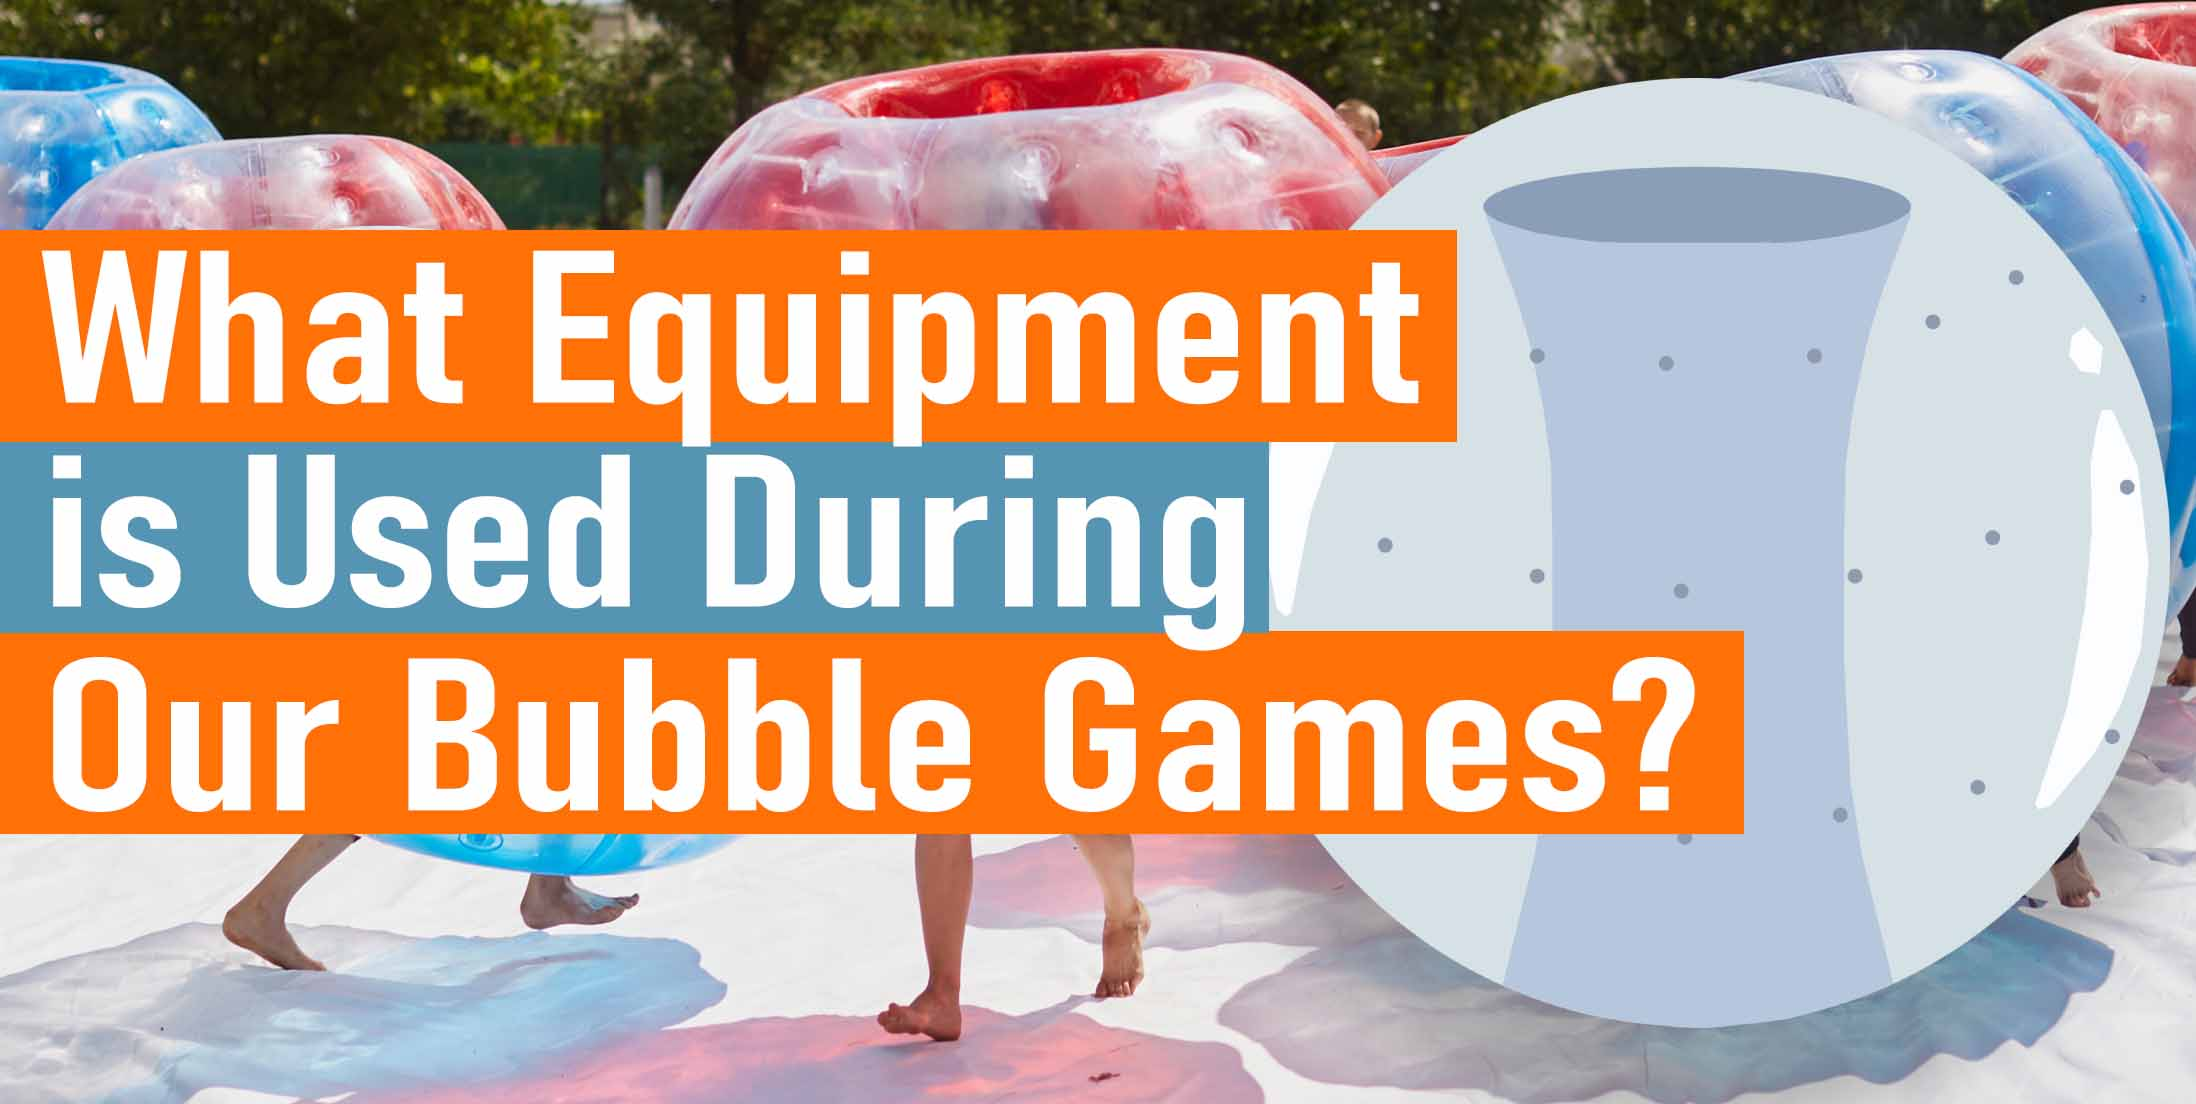 What Equipment is Used During Our Bubble Games